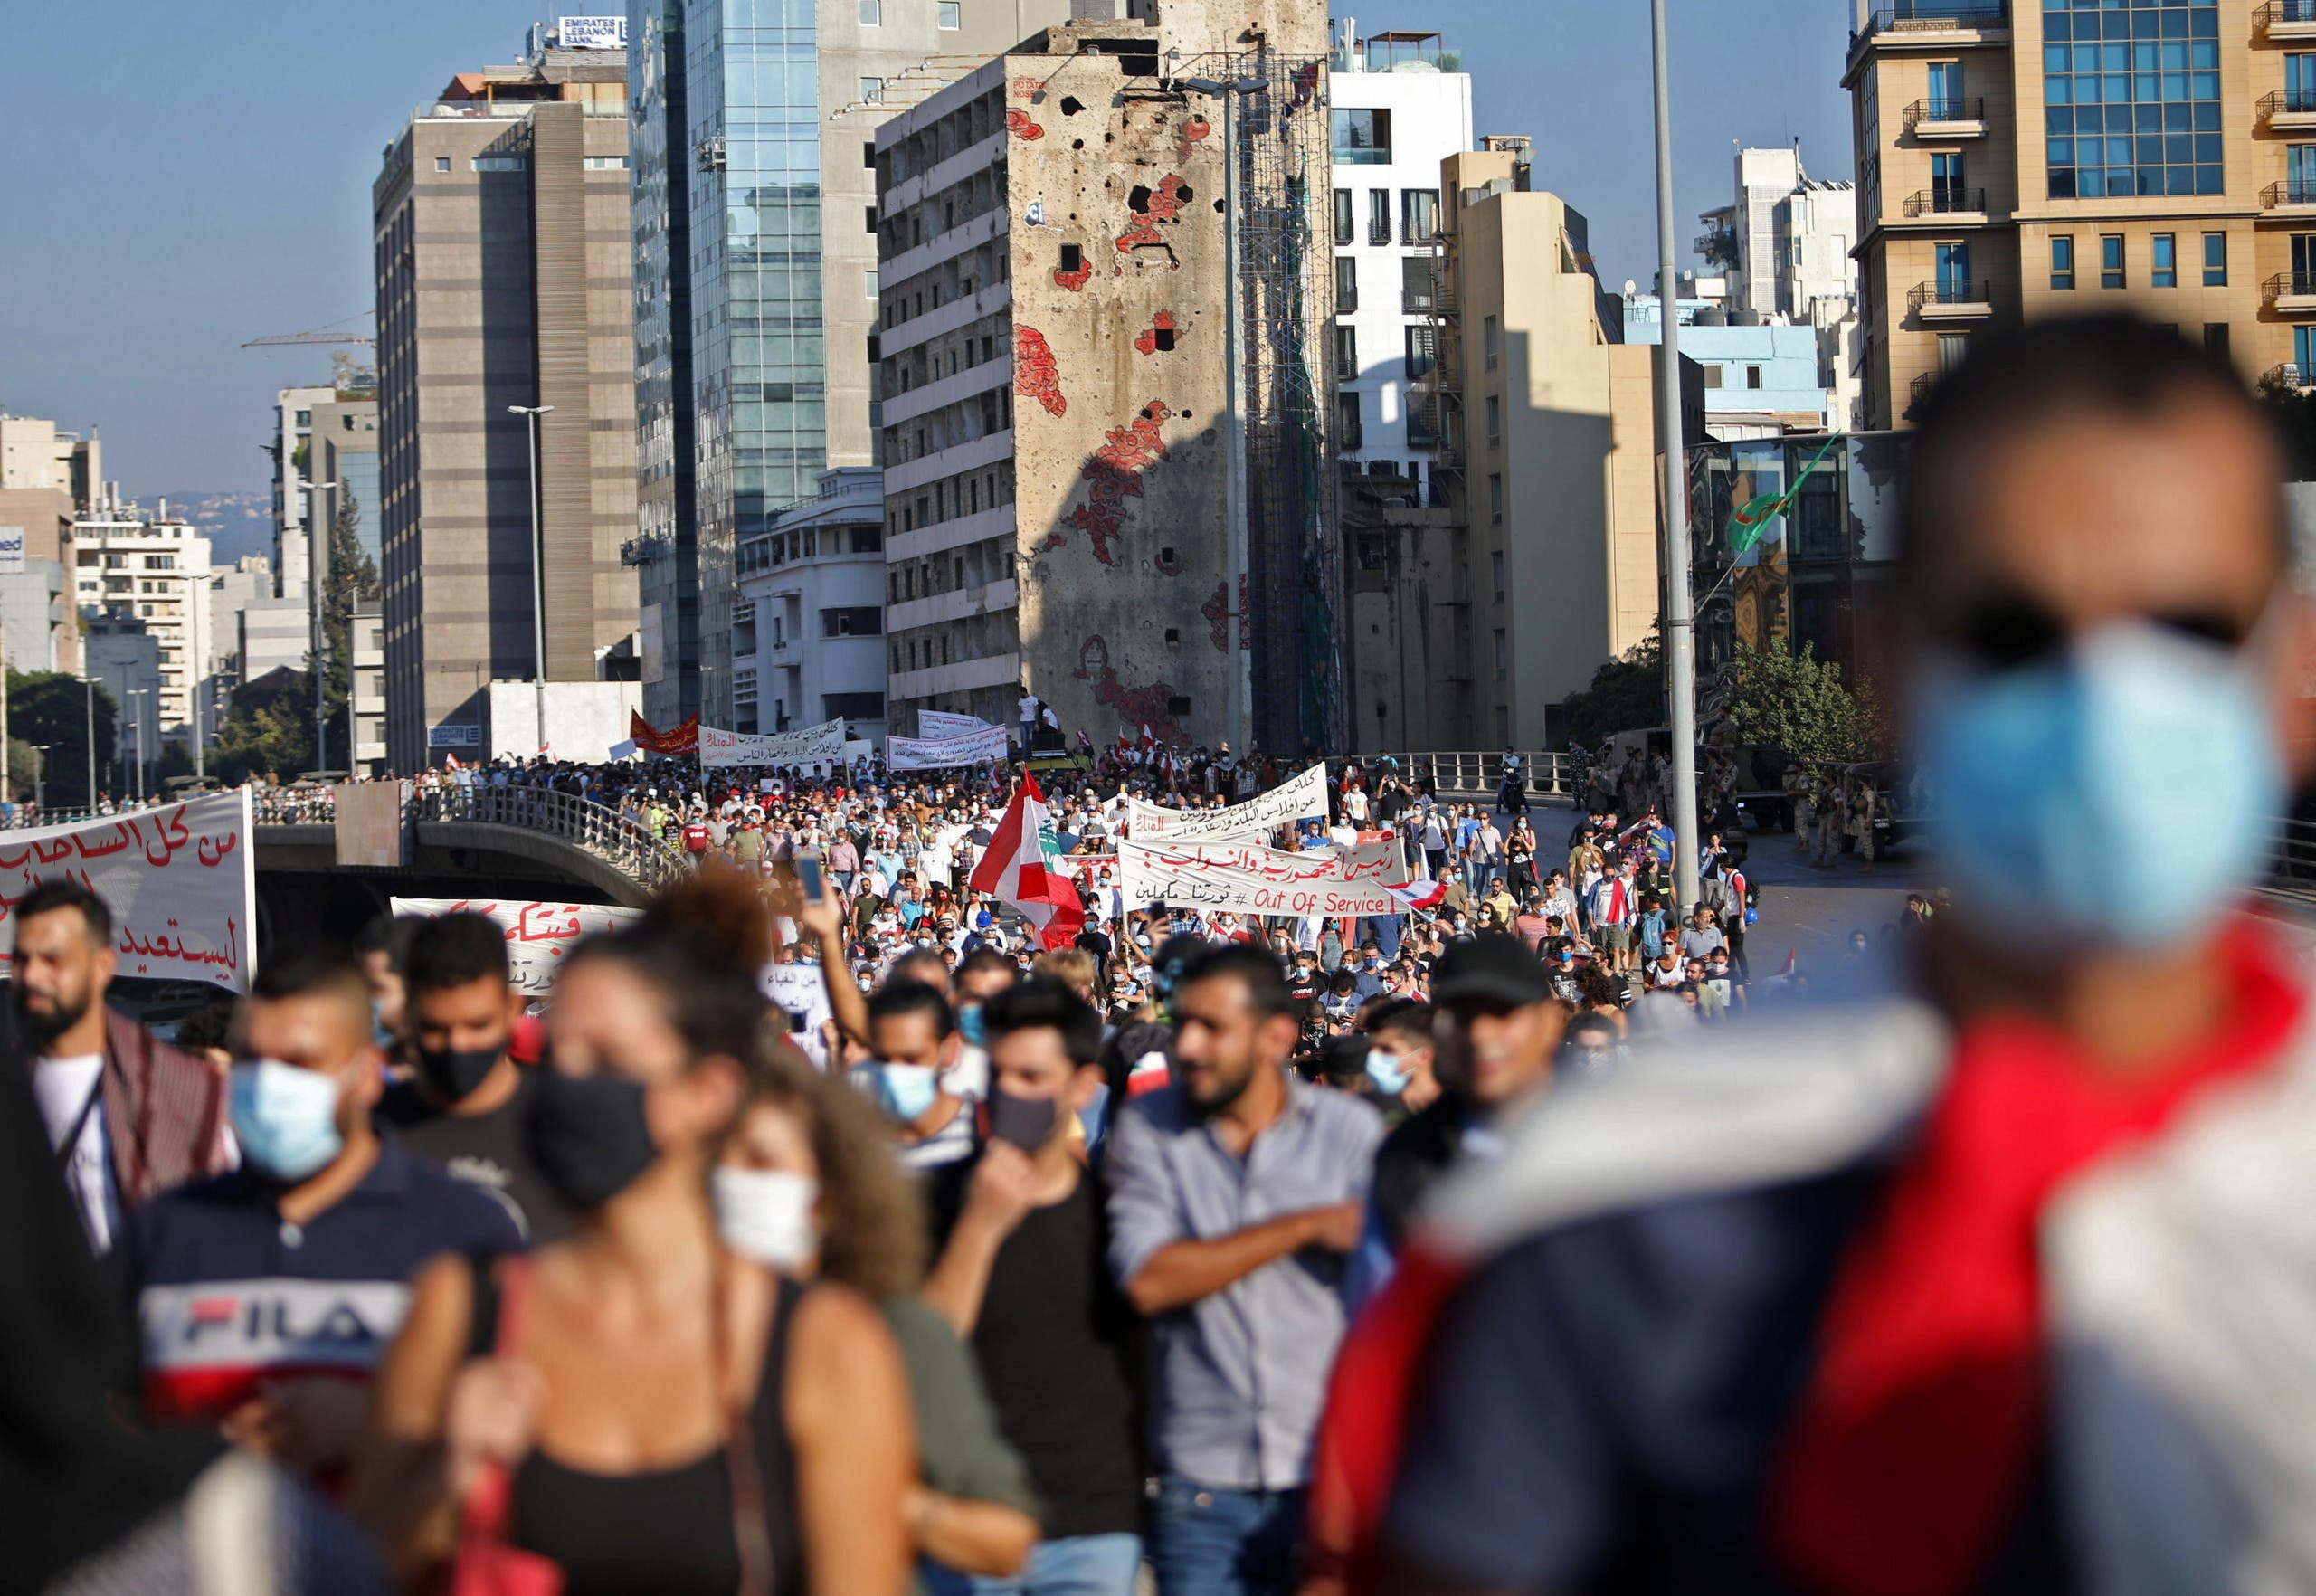 People march during a demonstration marking one year since the start of nation-wide protests in Beirut, Lebanon October 17, 2020. (Reuters)